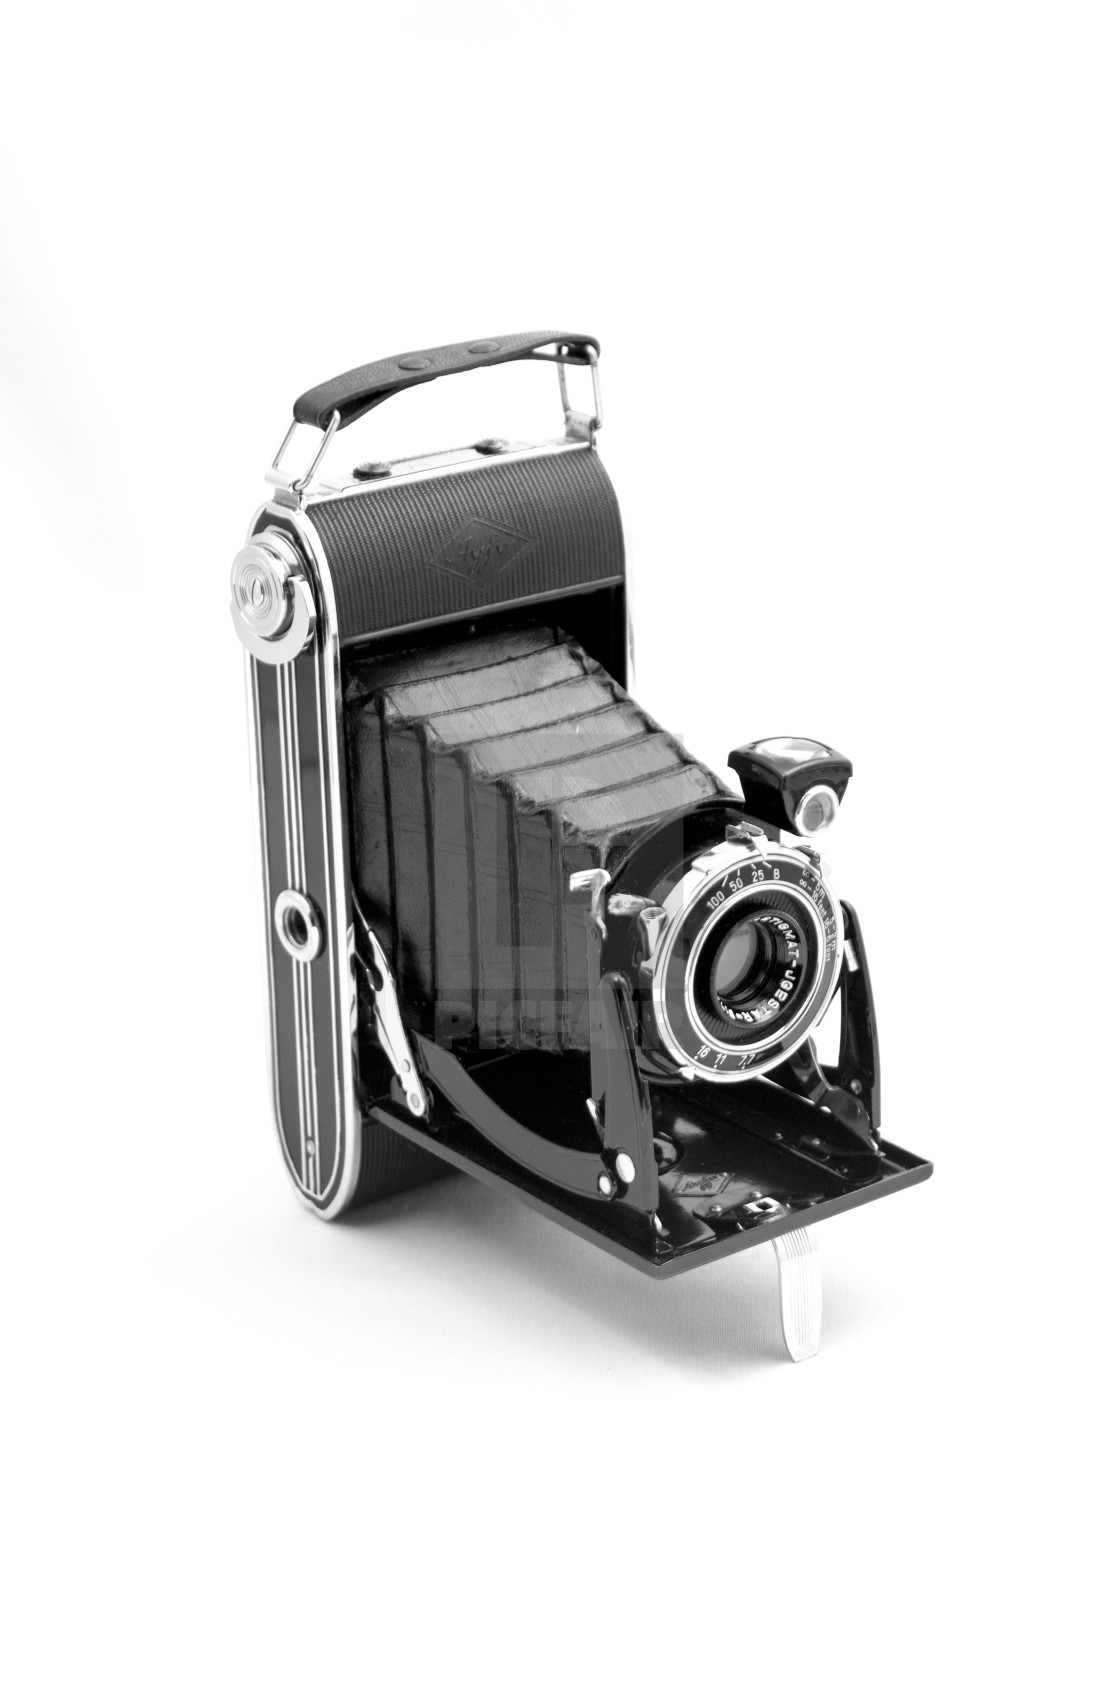 """Old camera on white background"" stock image"